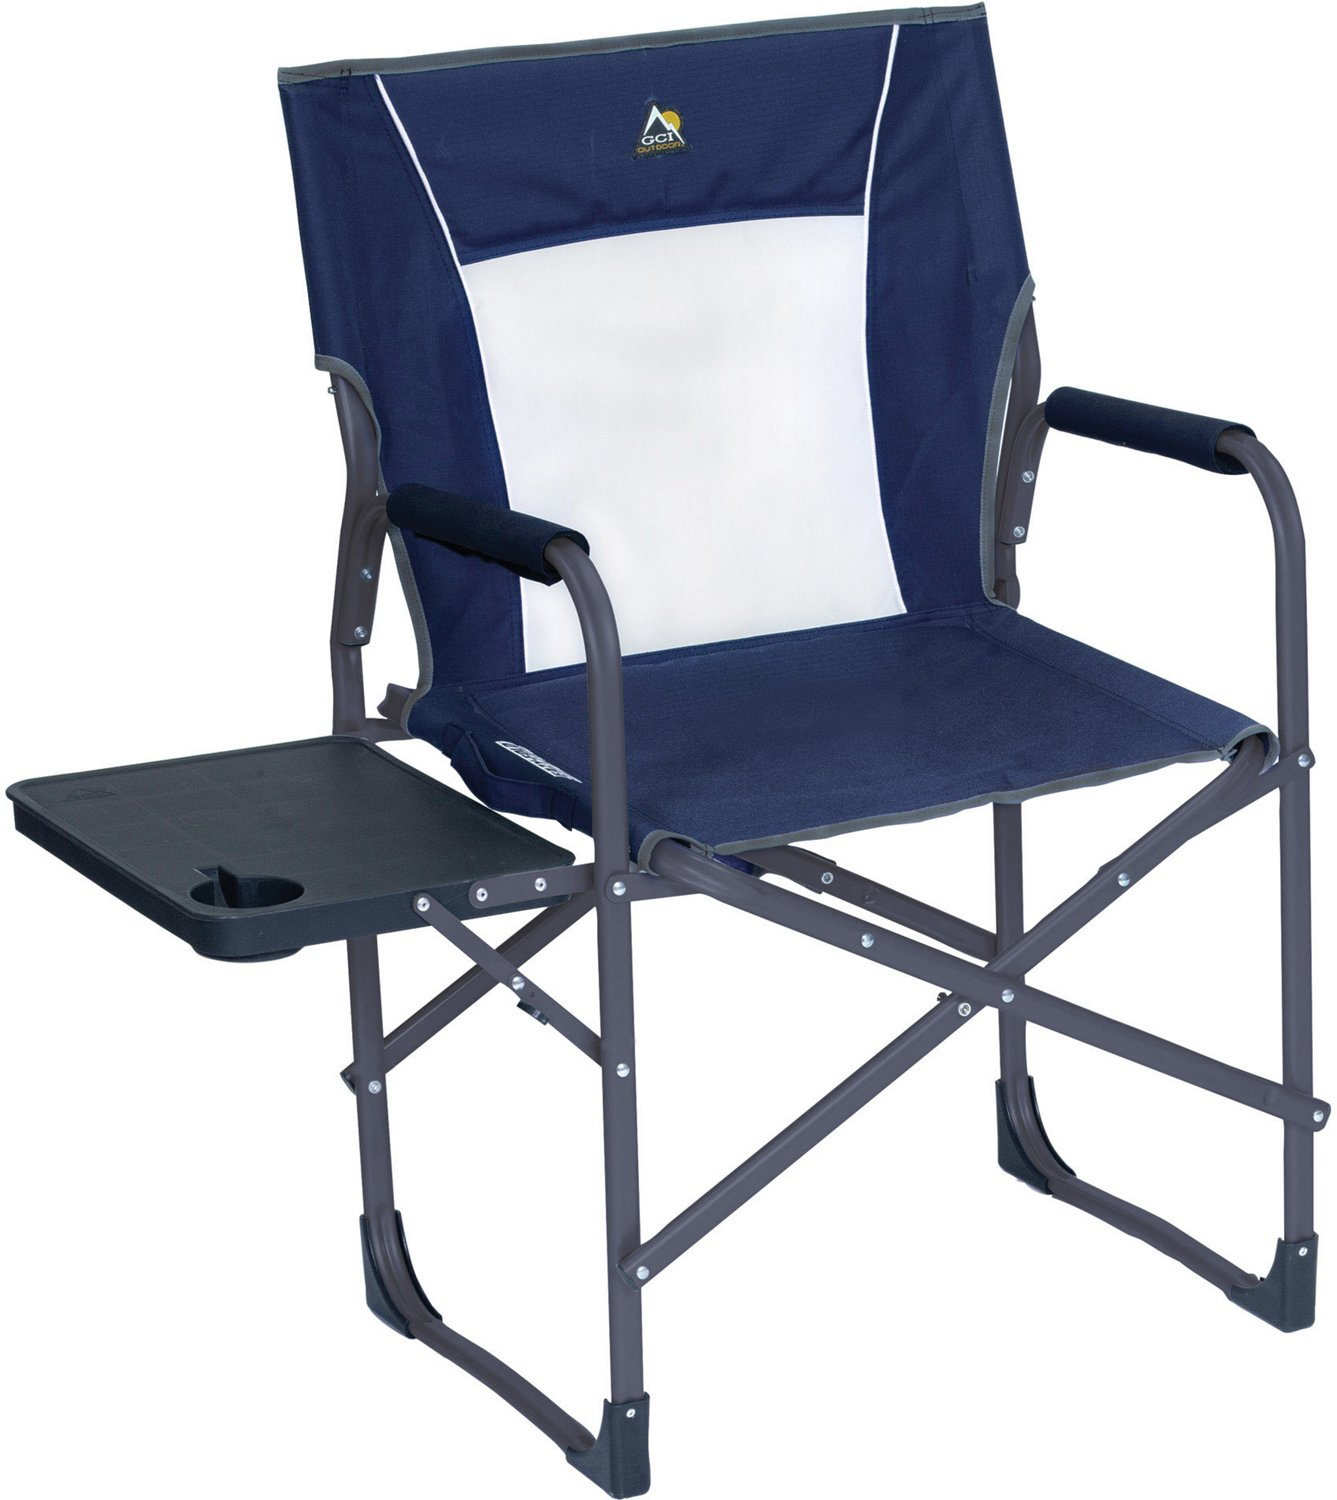 magellan fishing chair herman miller chairs singapore government folding | plastic, wooden, fabric & metal academy